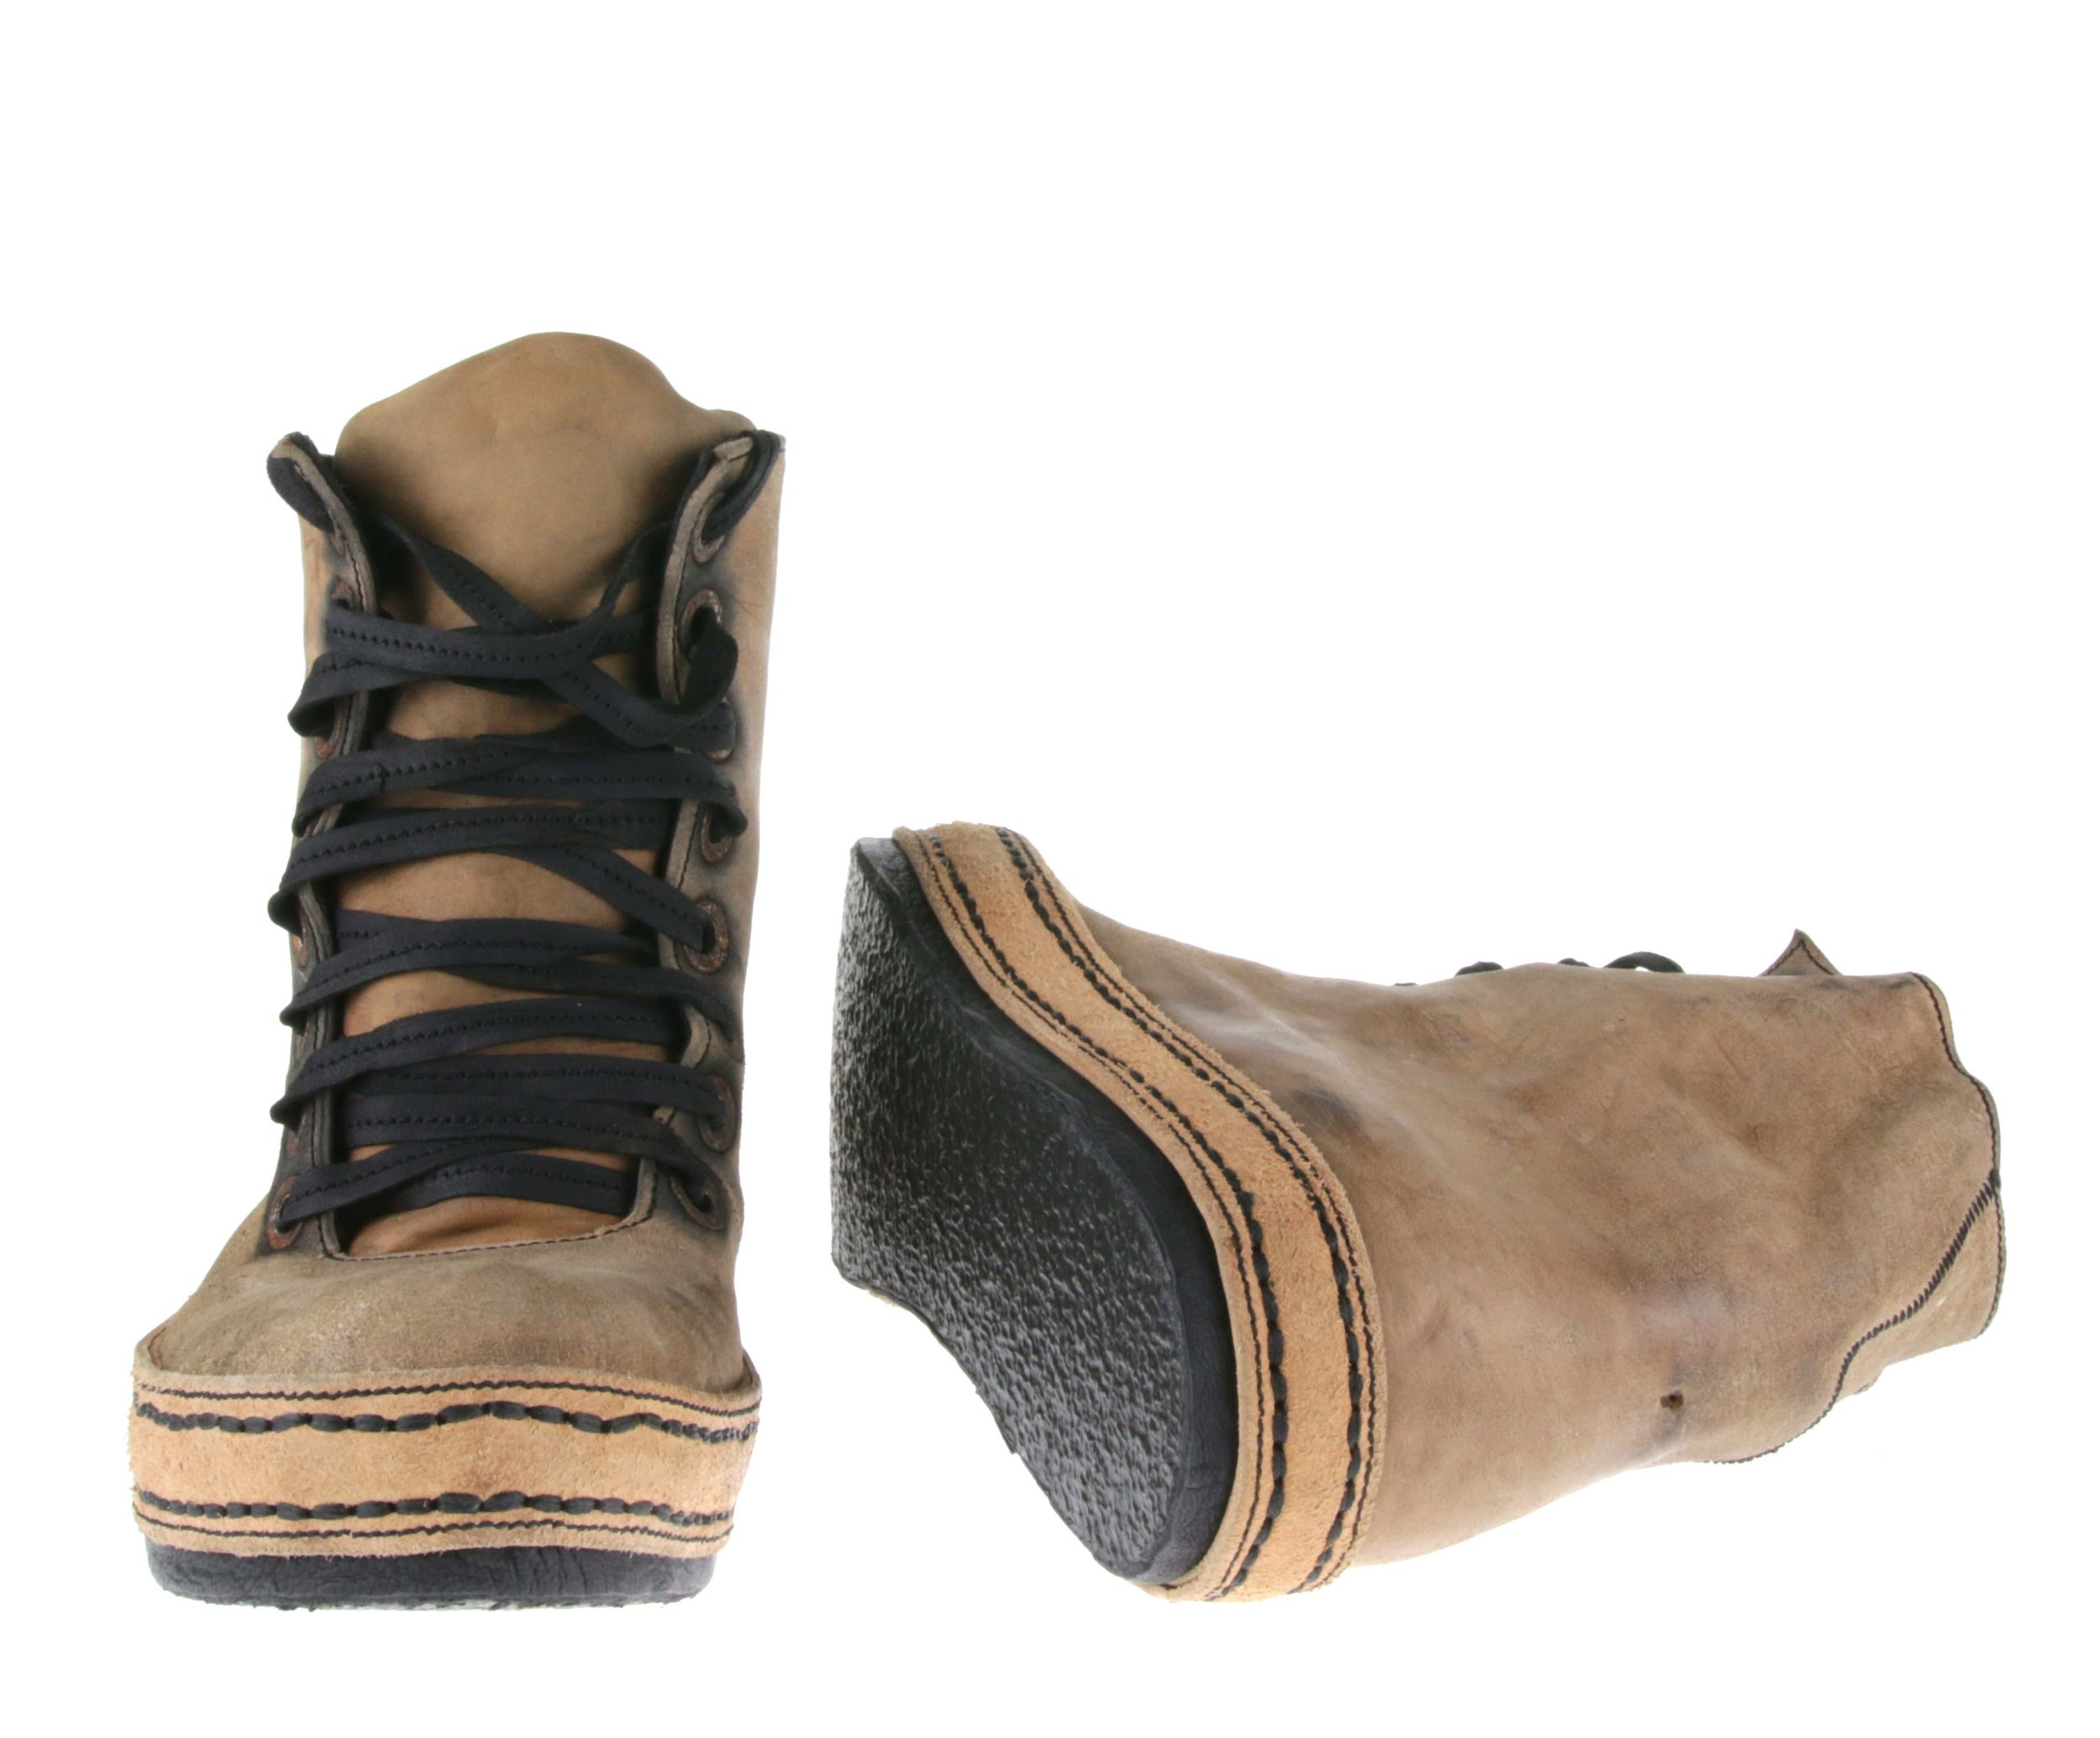 8Hole Sk8 Nat Tan Front Inside.jpg